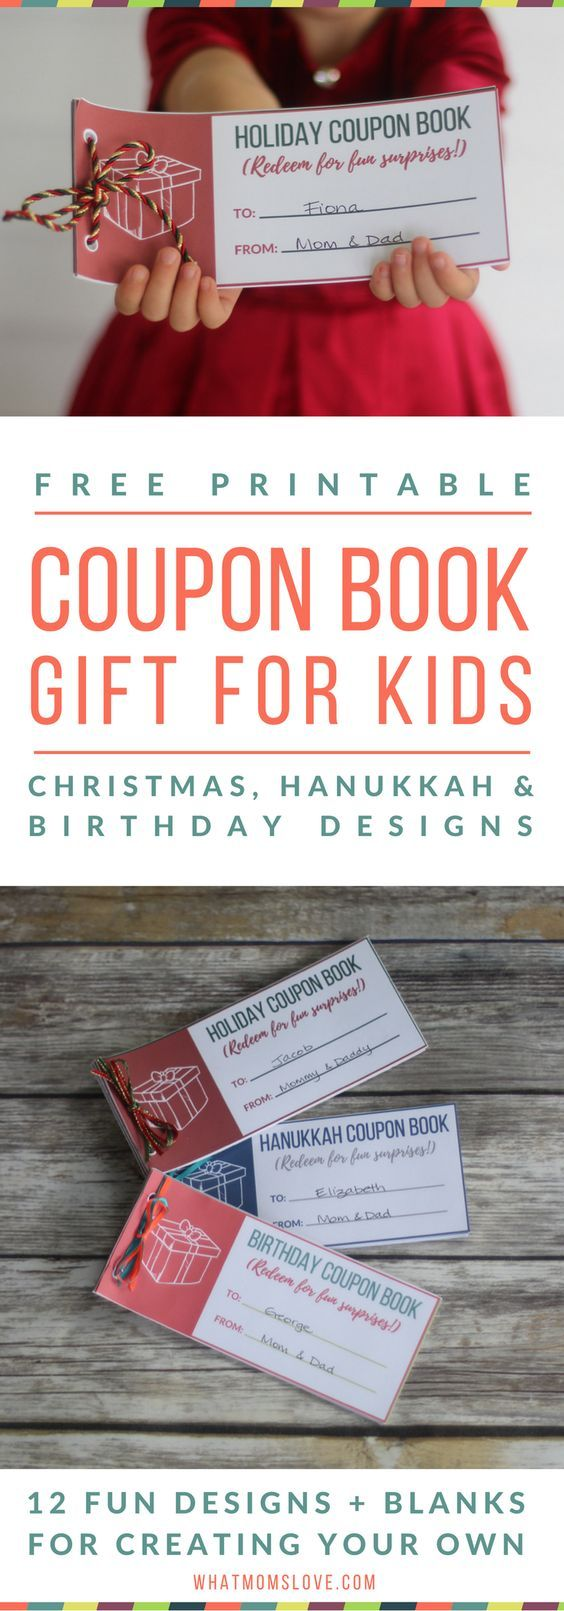 coupon books for